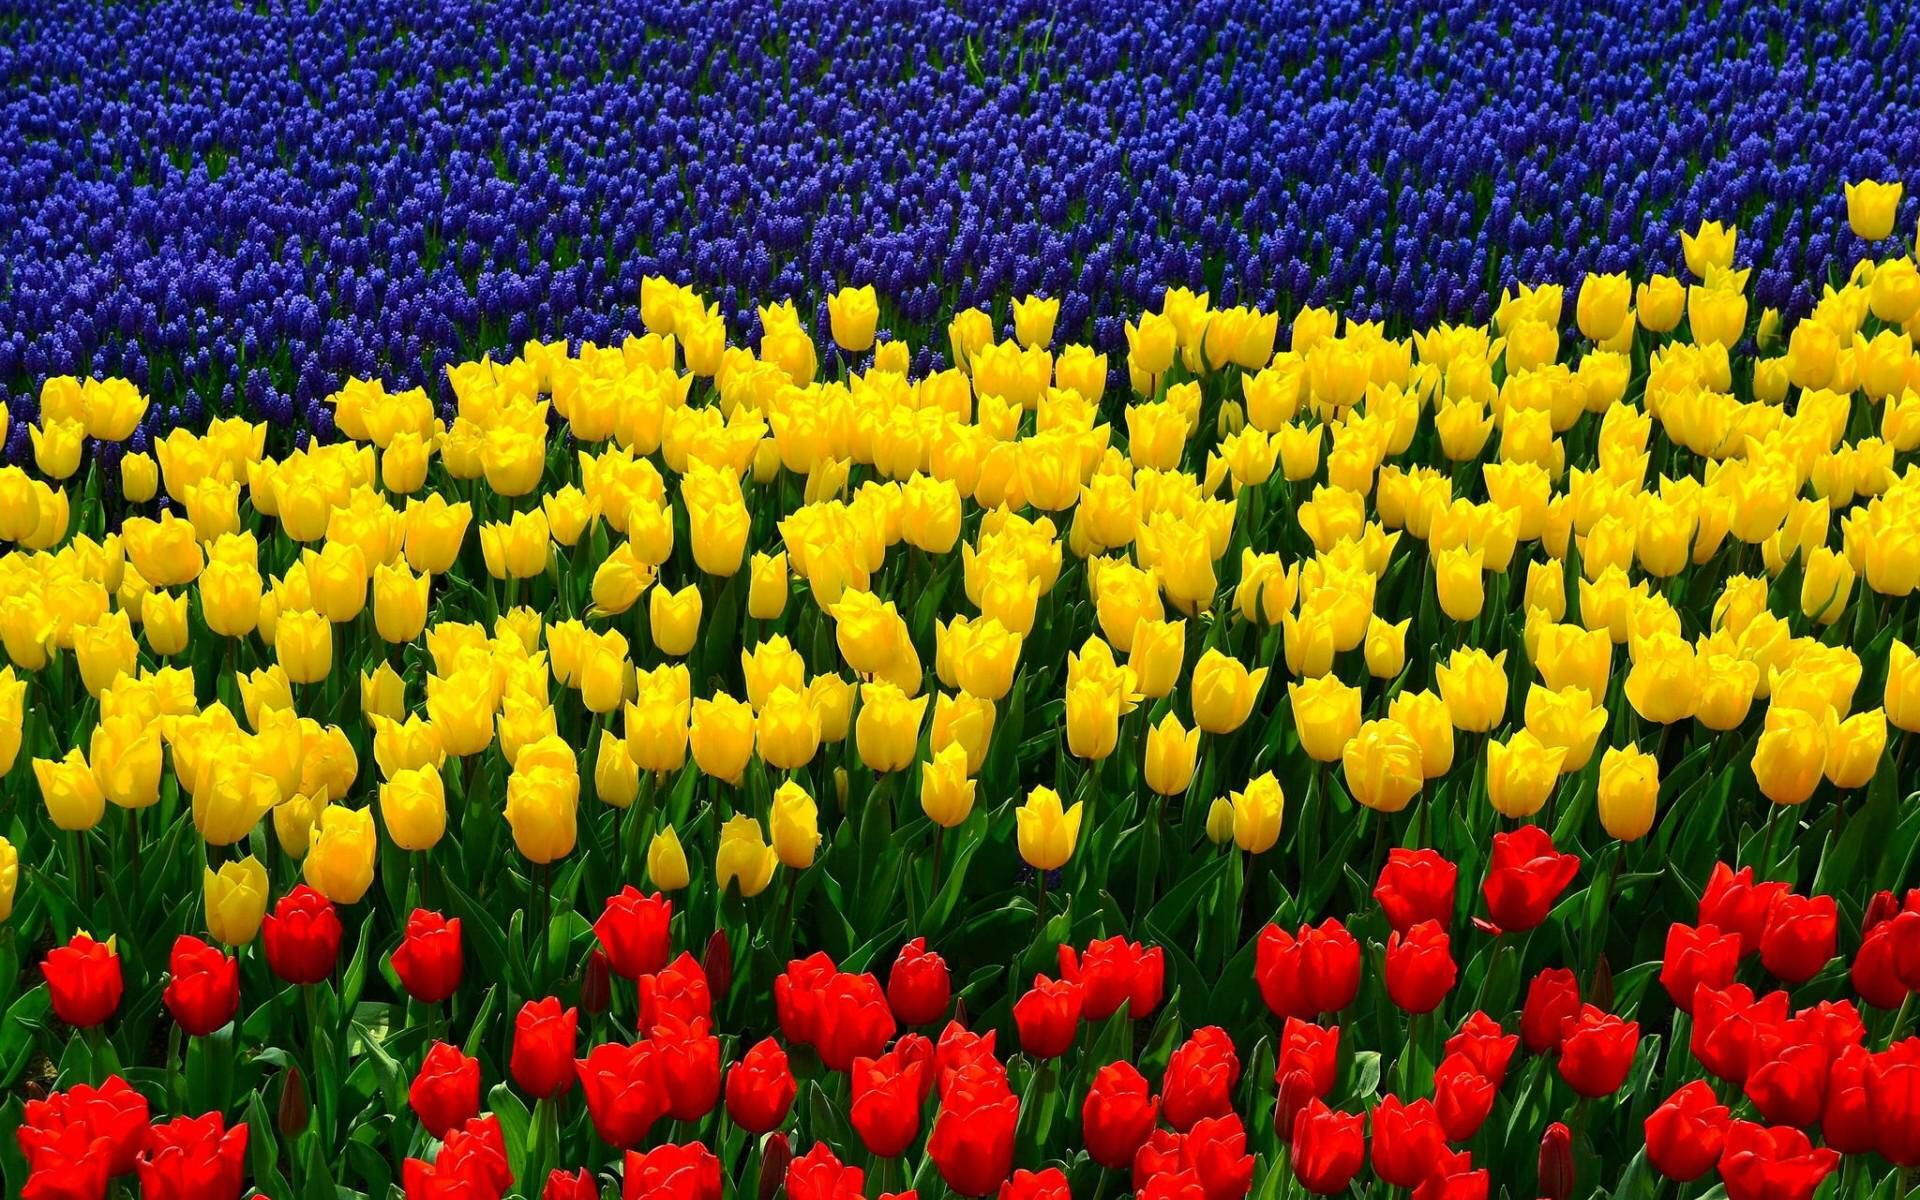 Image from http://bookmarks.mikis.it/wp-content/uploads/2014/10/tulipani-tricolori.jpg.